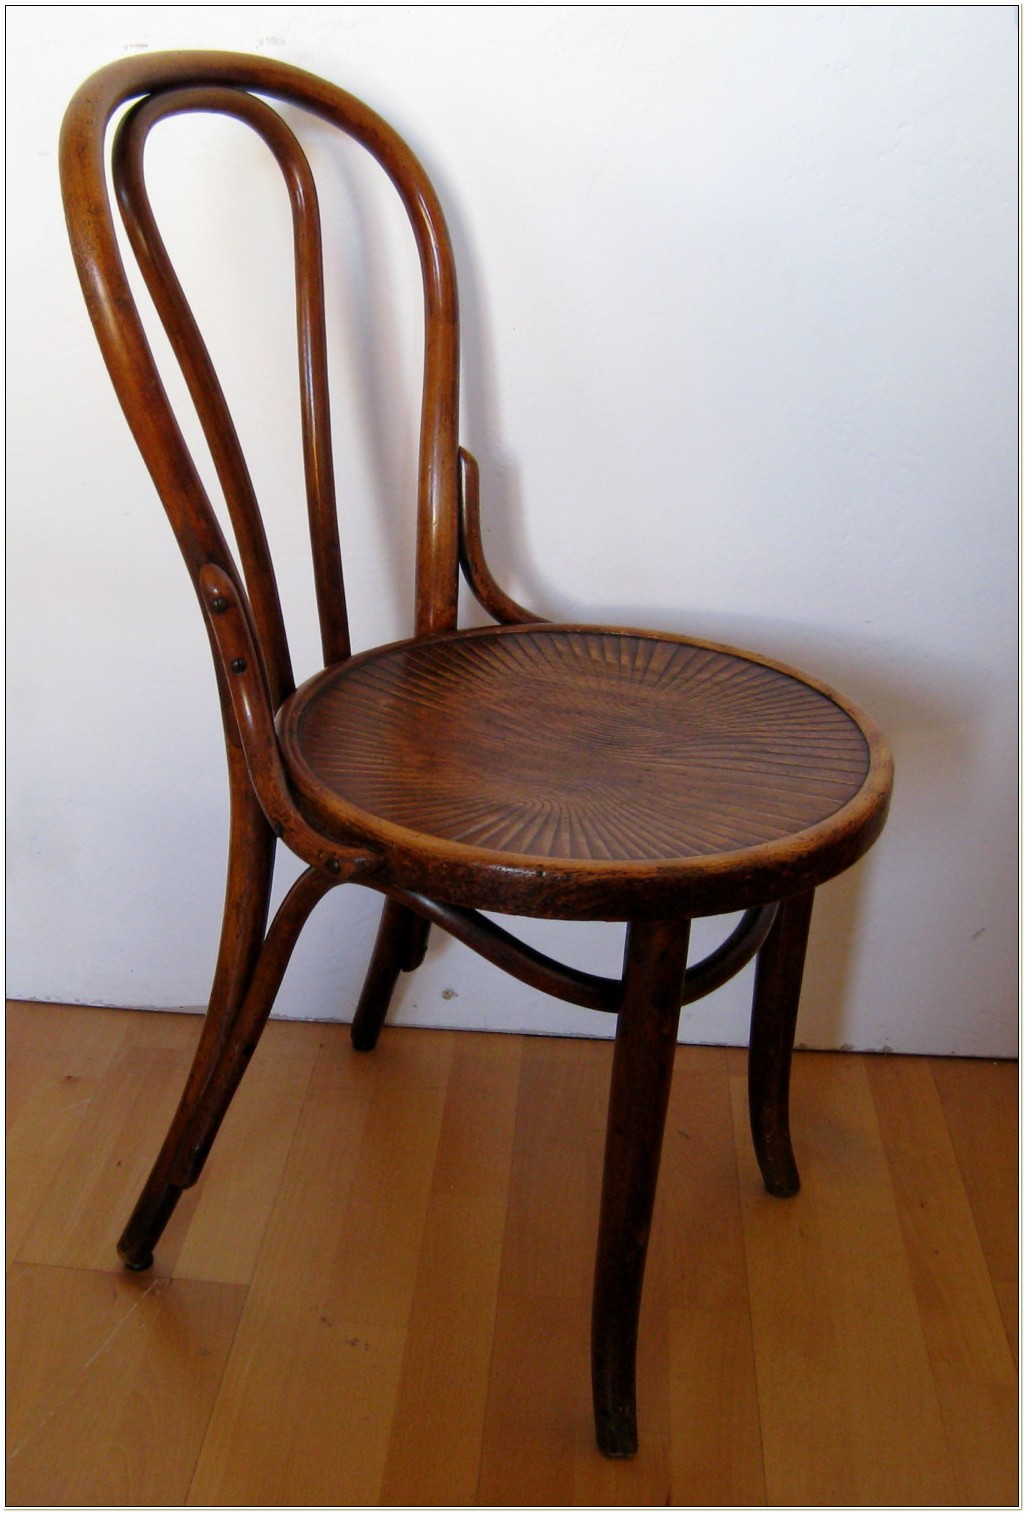 Thonet Bentwood Rocking Chair Made In Poland